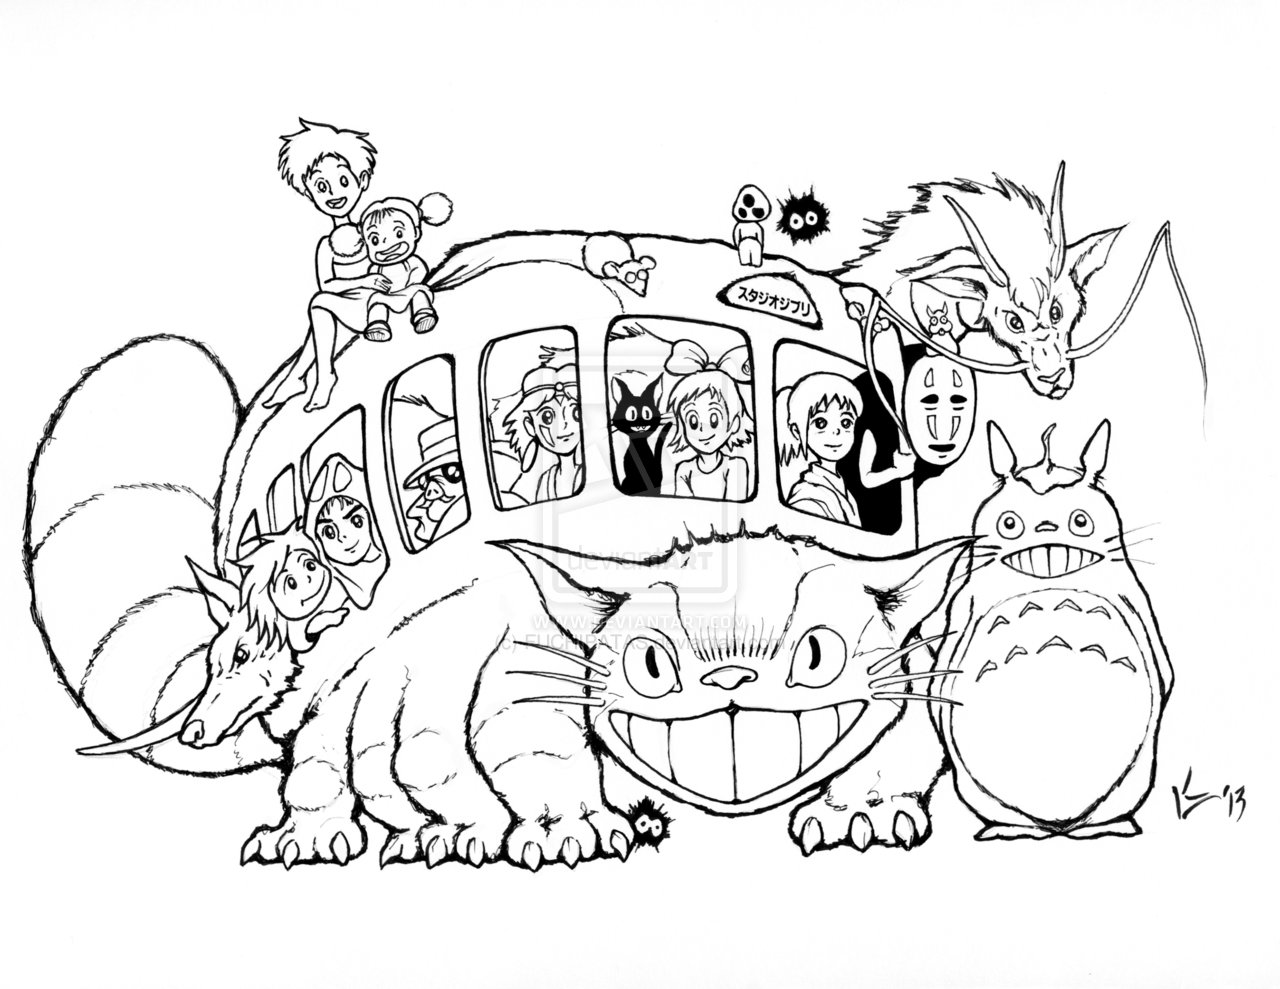 1280x989 Studio Ghibli Catbus For Aicn Contest